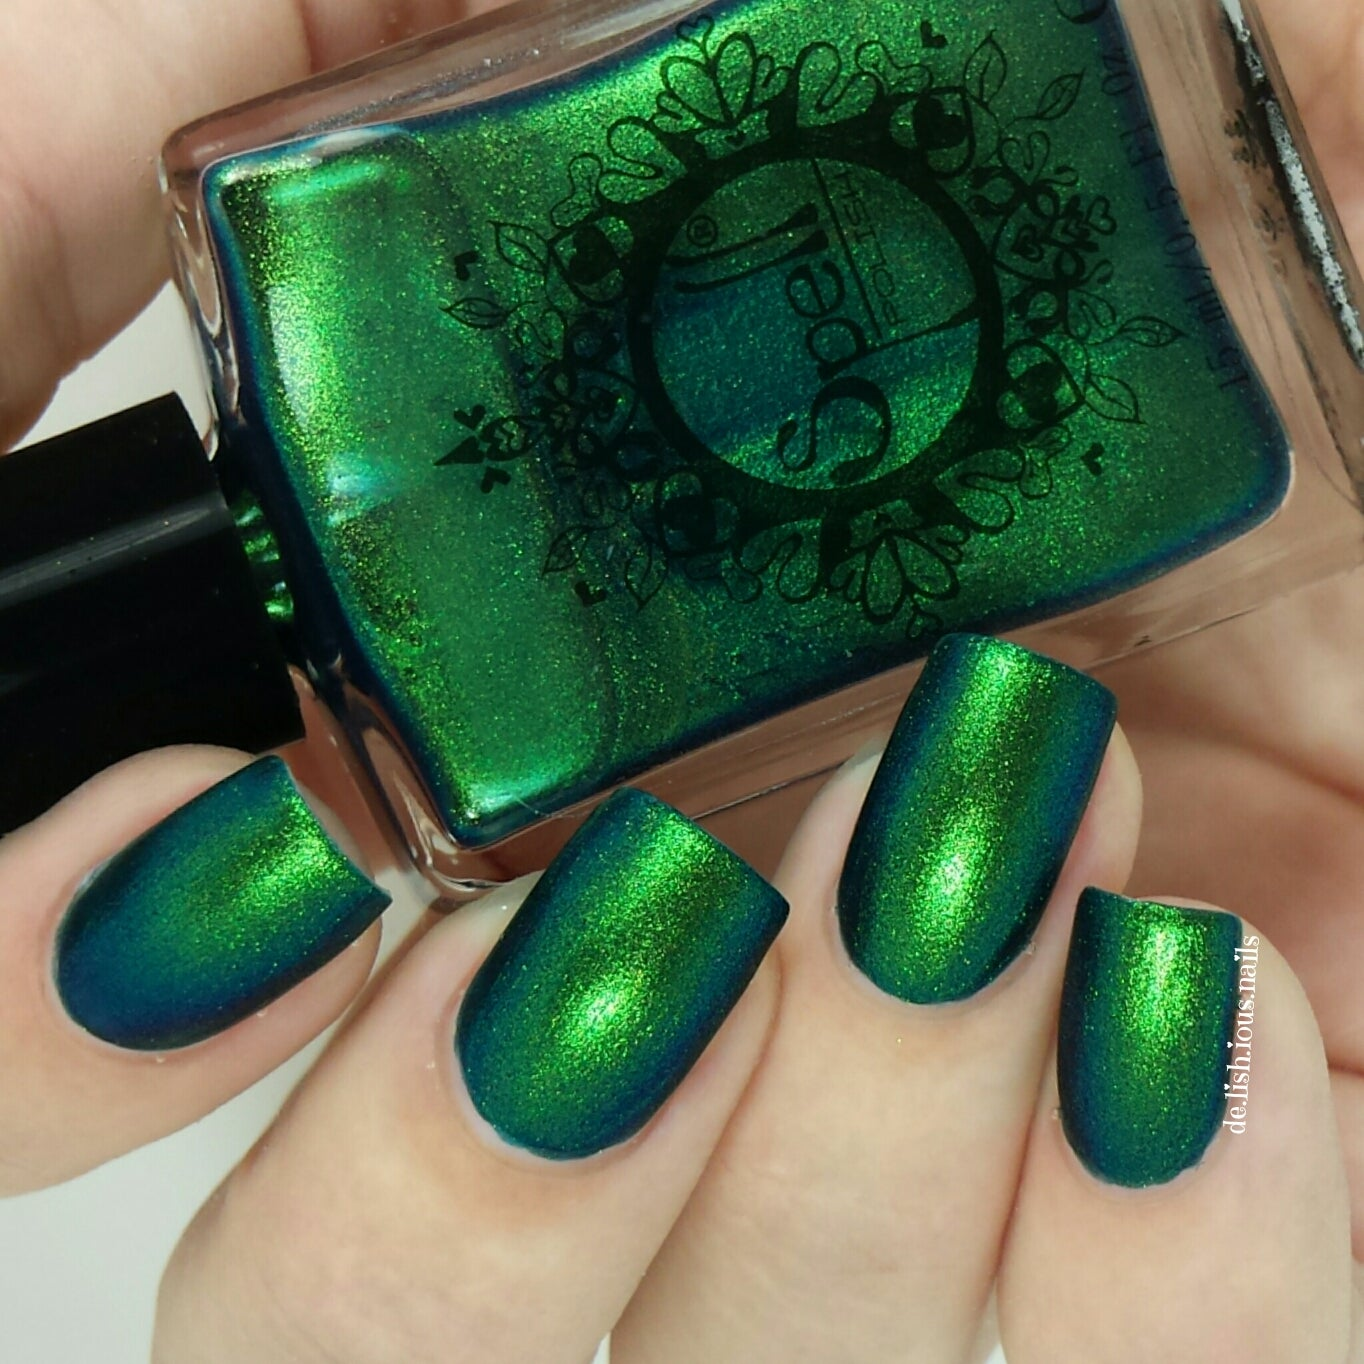 Clodhopper Emerald Green Yellow Duochrome Spell Nail Polish Quot Revenge Of The Duds Quot Spell Polish